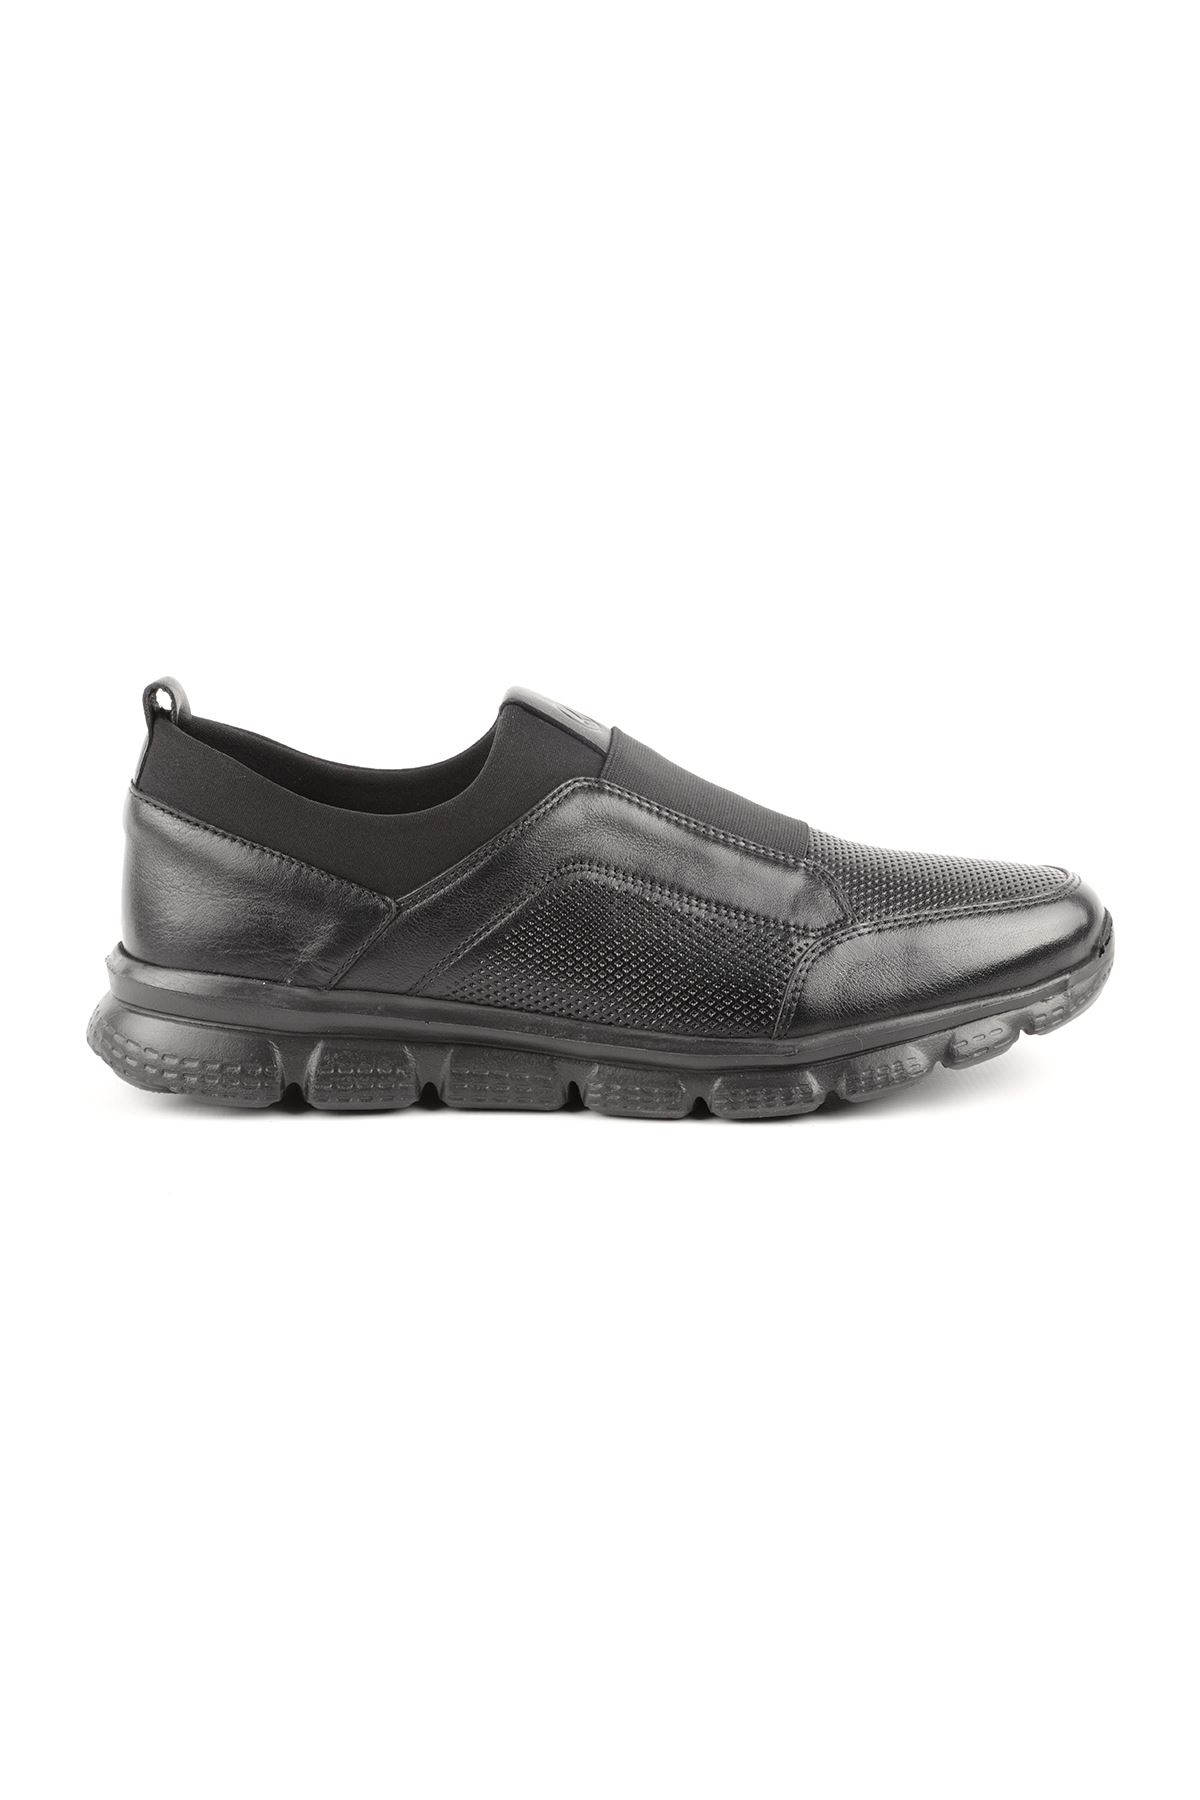 Libero L3625 Black Men's Sport Shoes